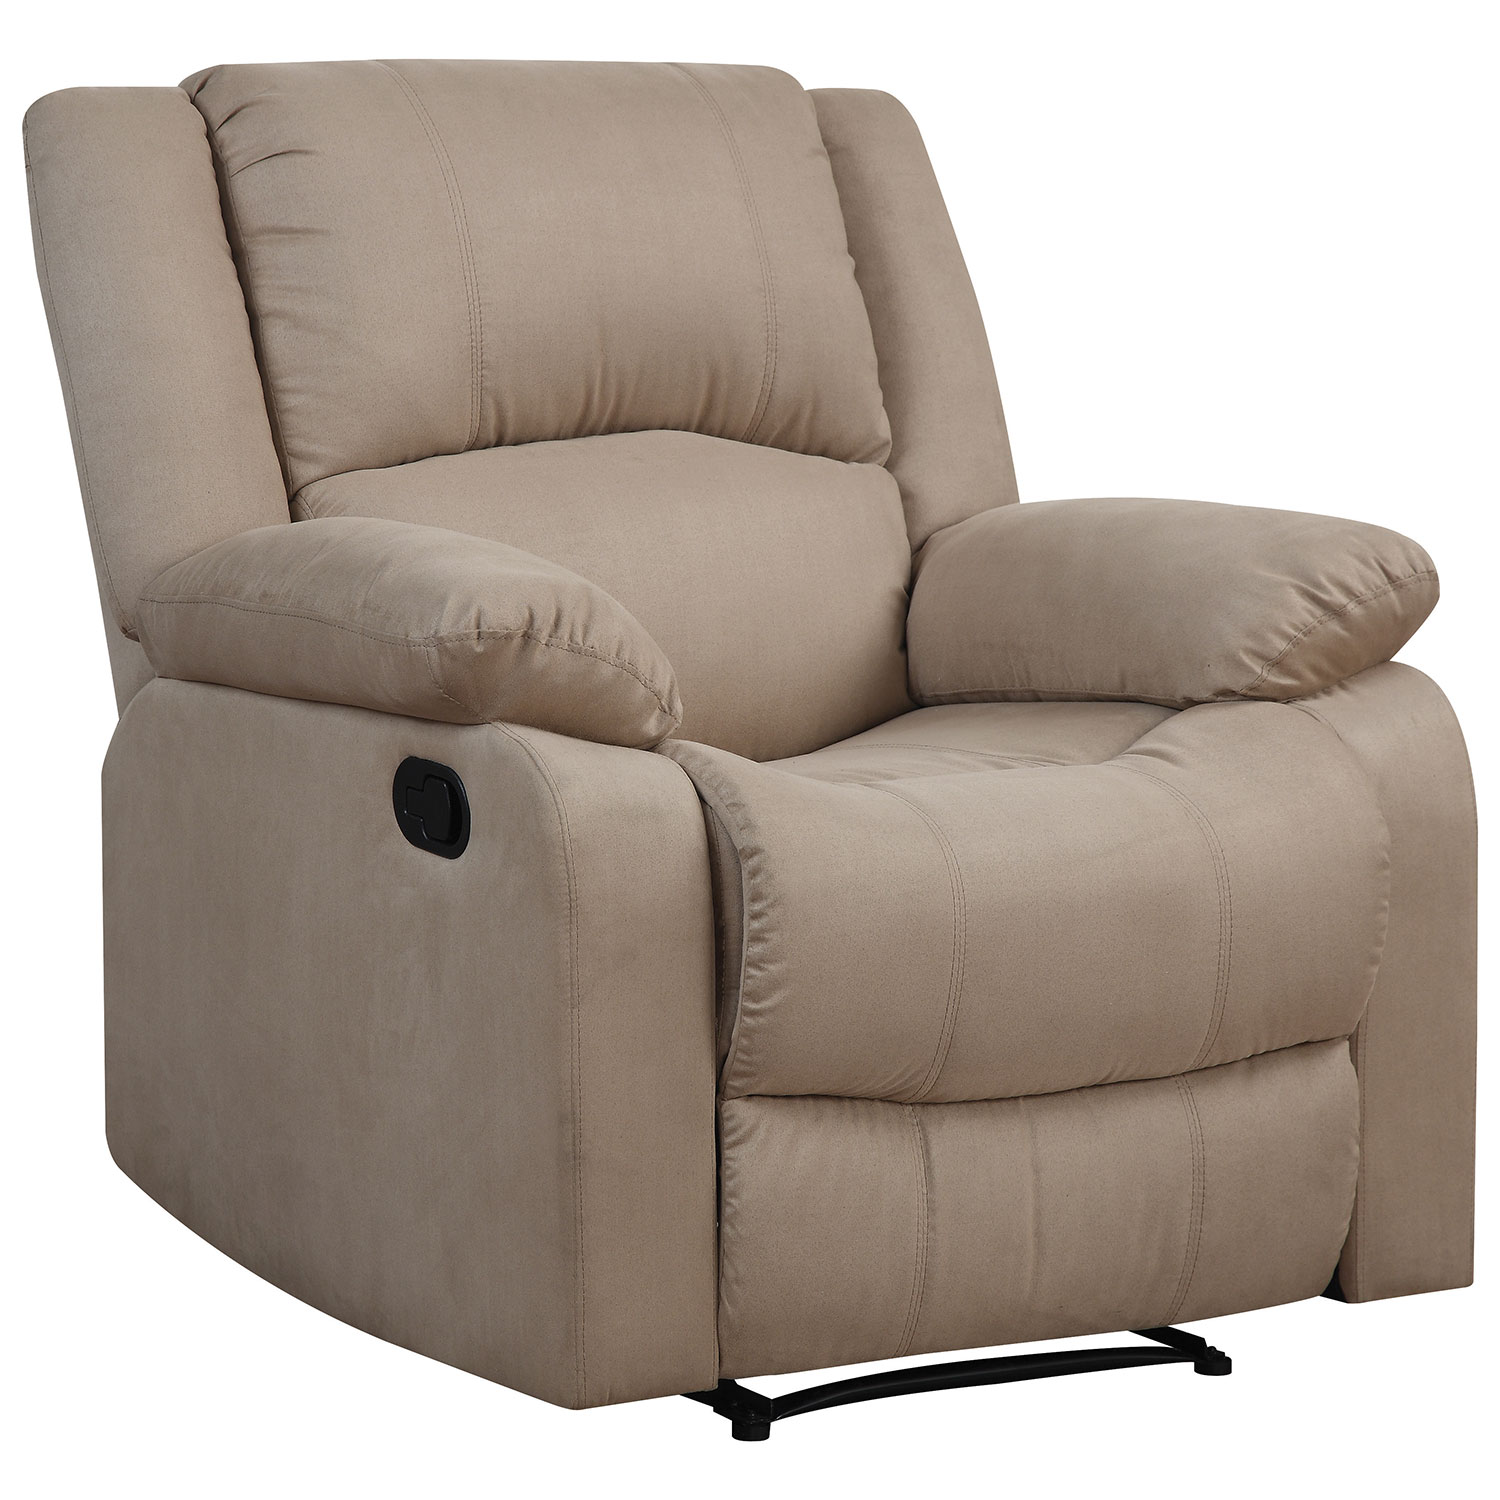 Warren Contemporary Micro Suede Recliner Chair Beige Recliners